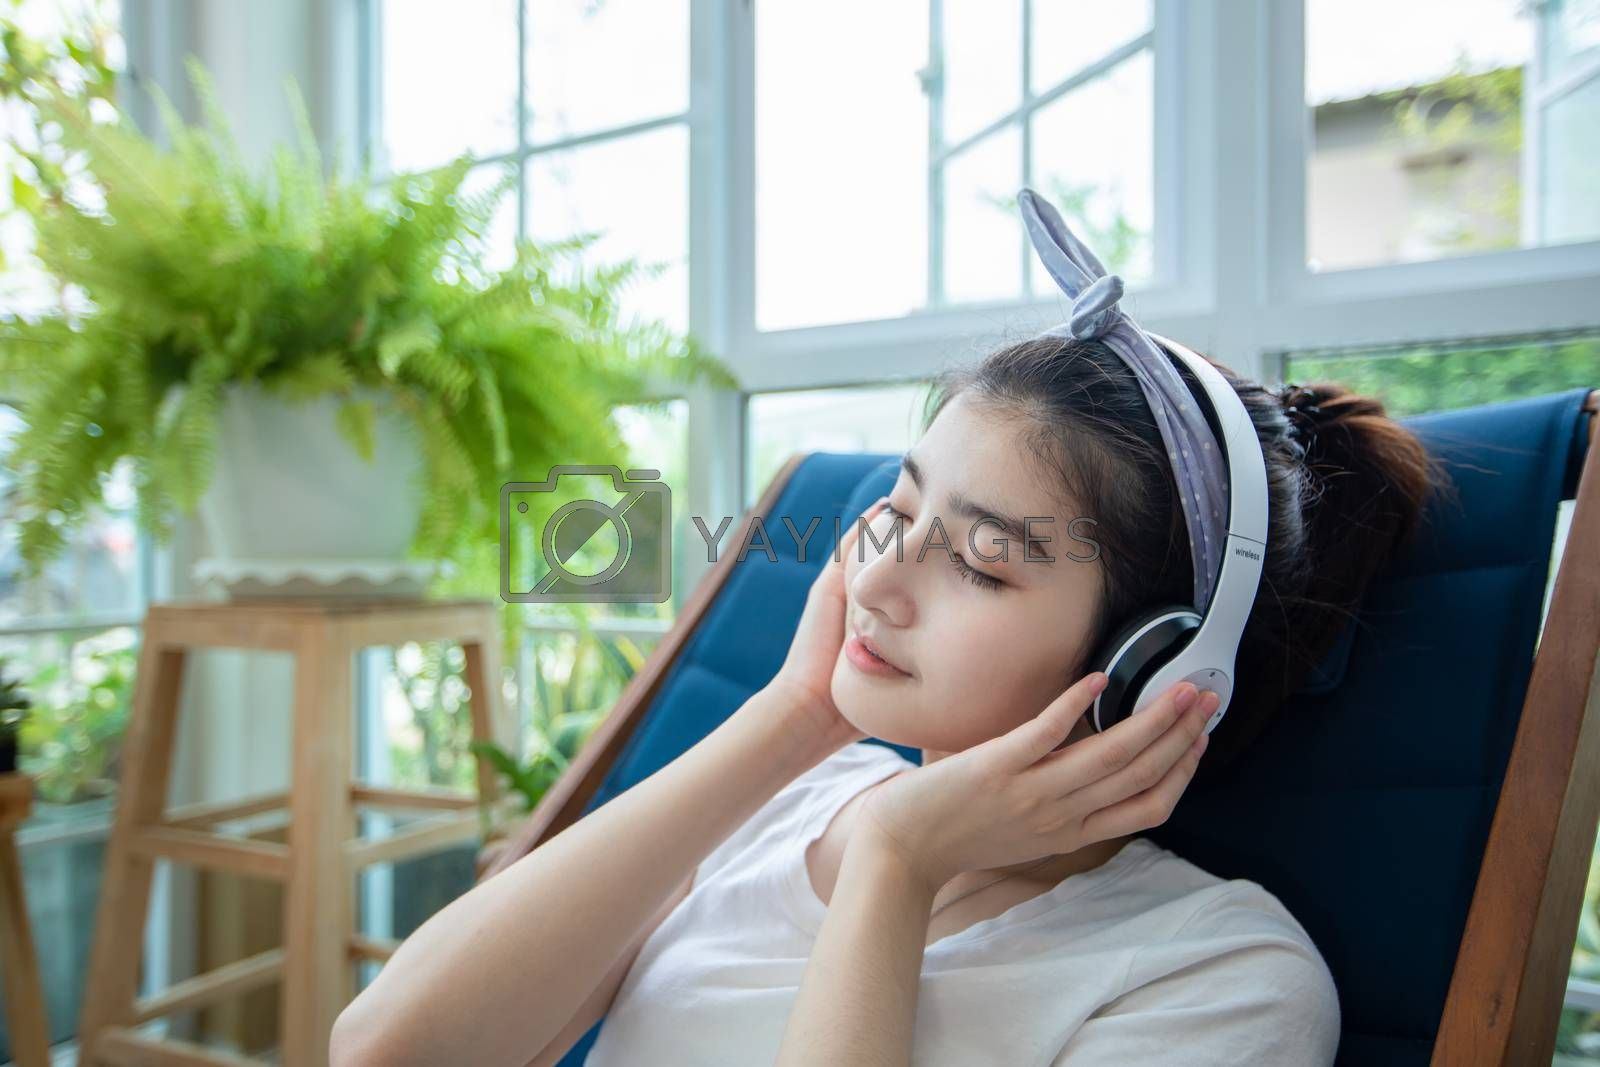 Beautiful Asian women wear headphones and use a notebook computer to work and listen to music in the garden at home on a relaxing day.